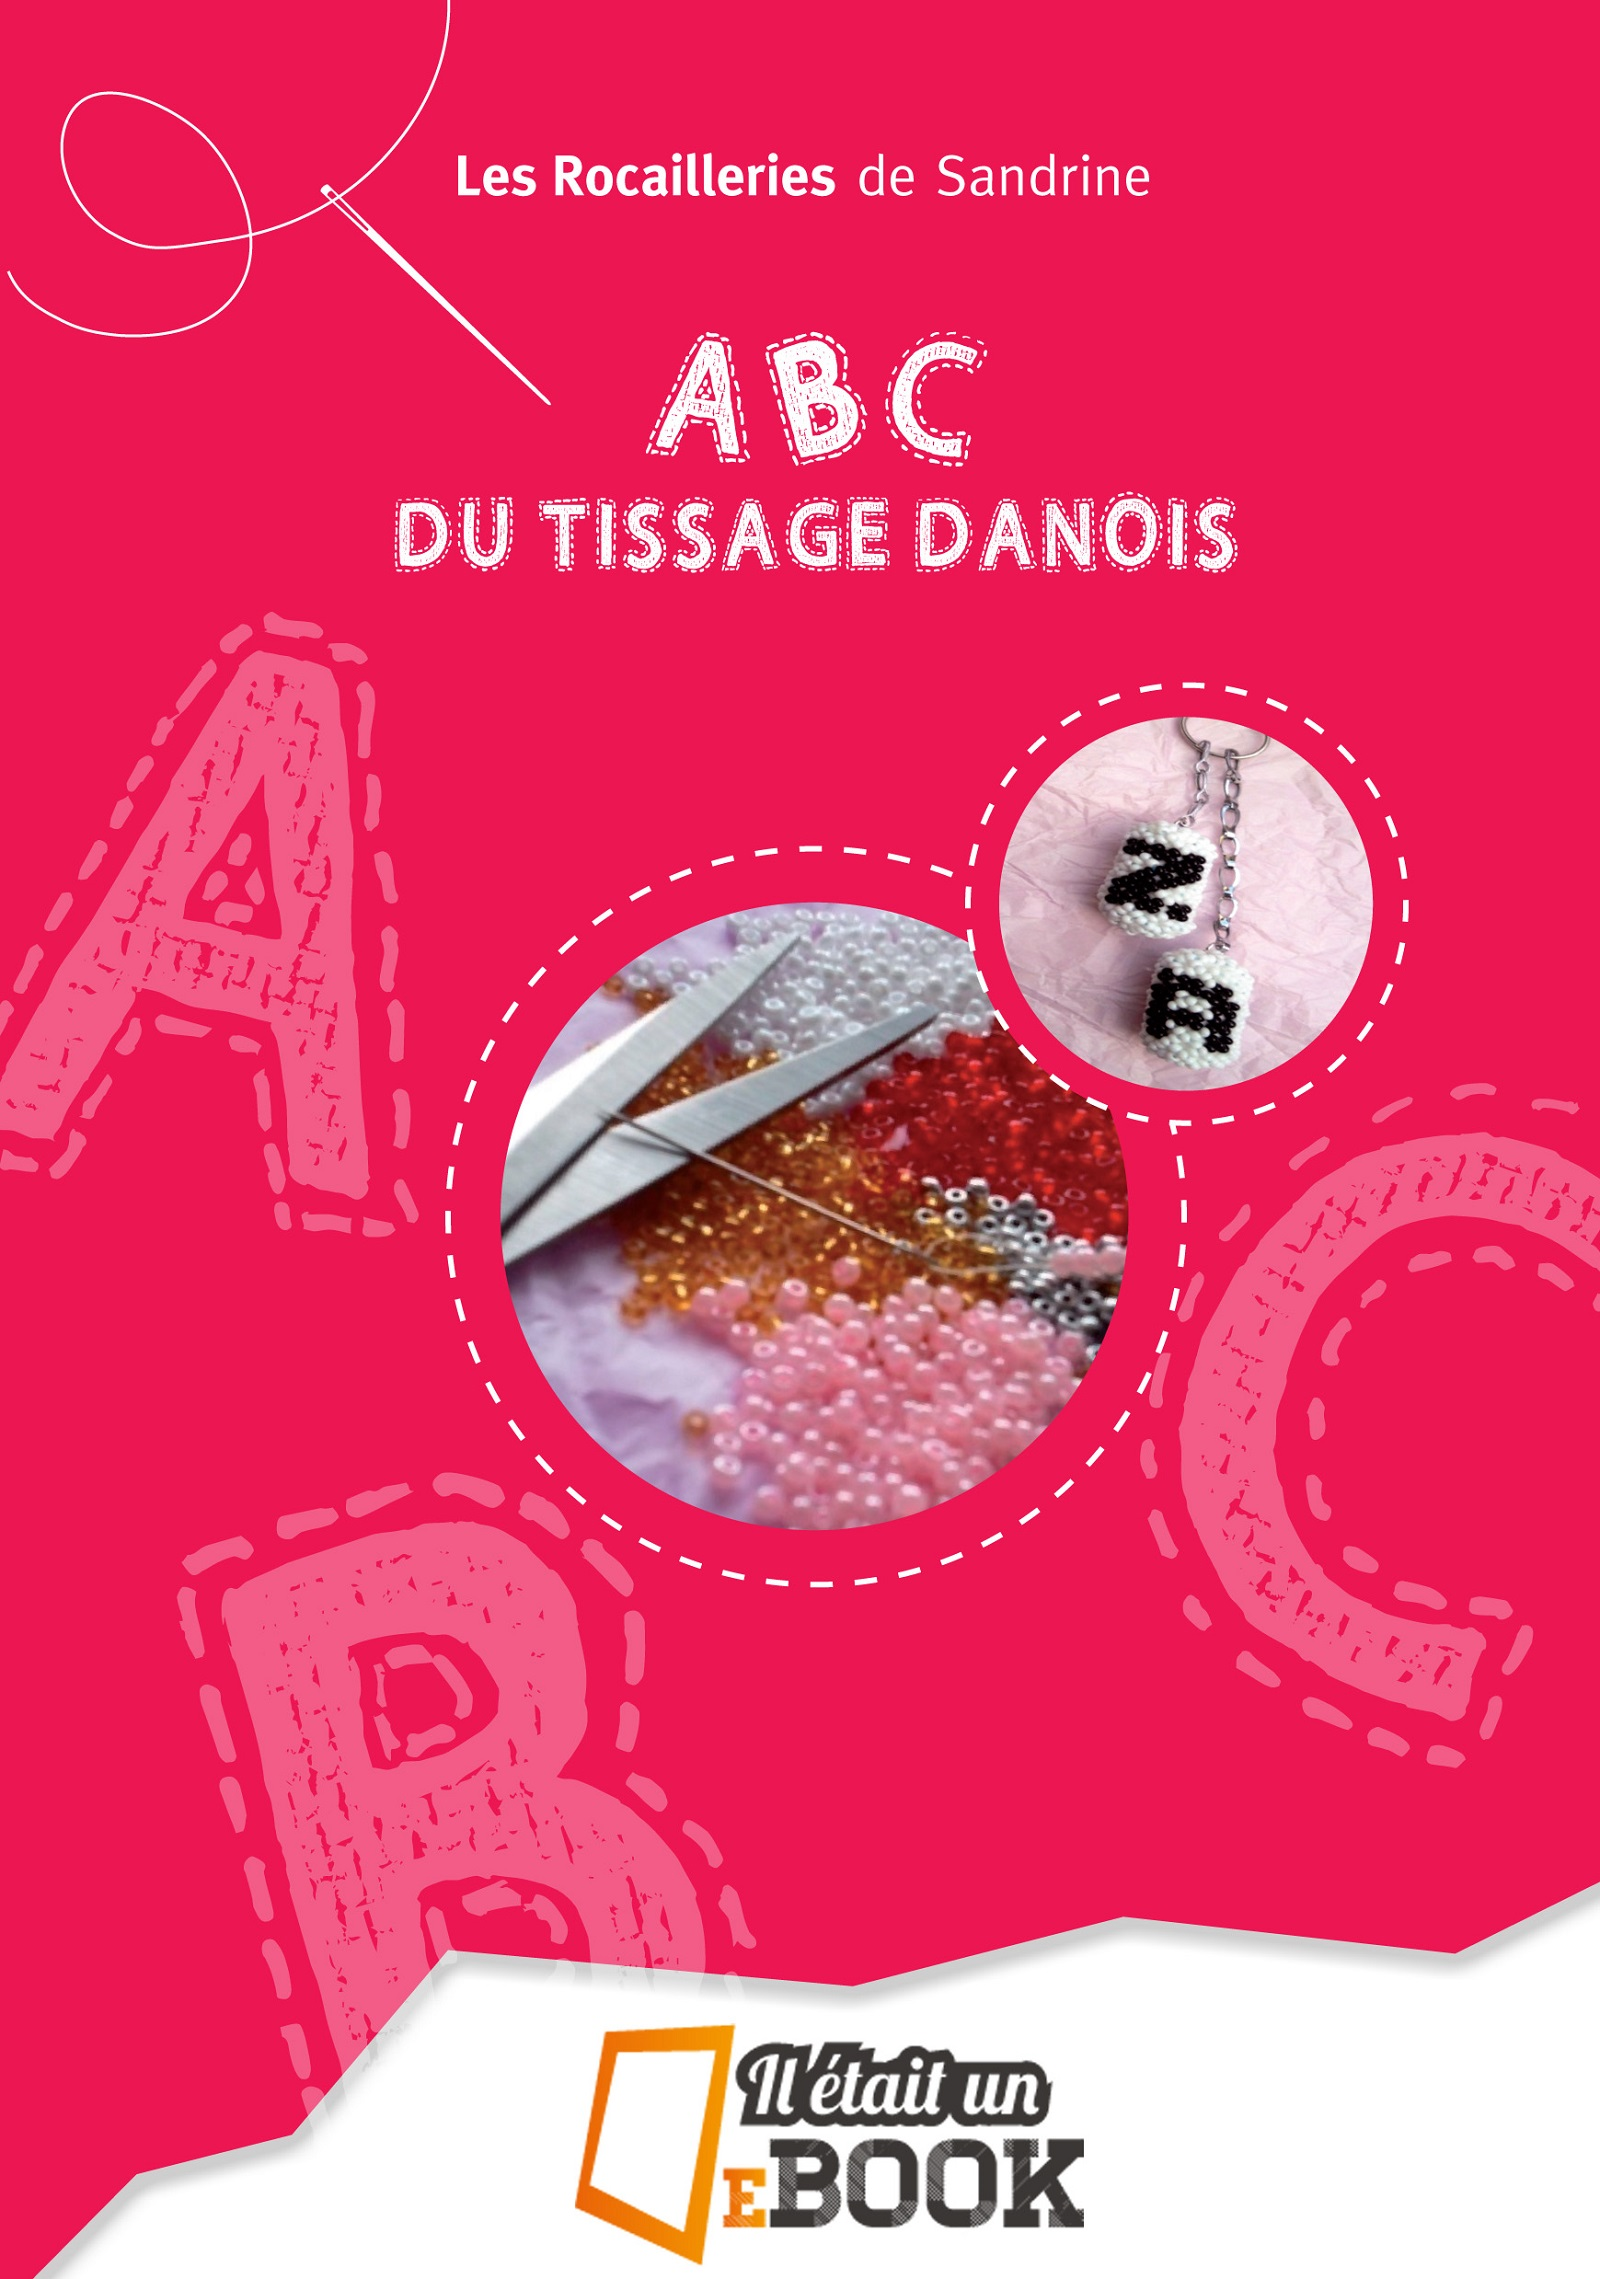 L'ABC du tissage danois